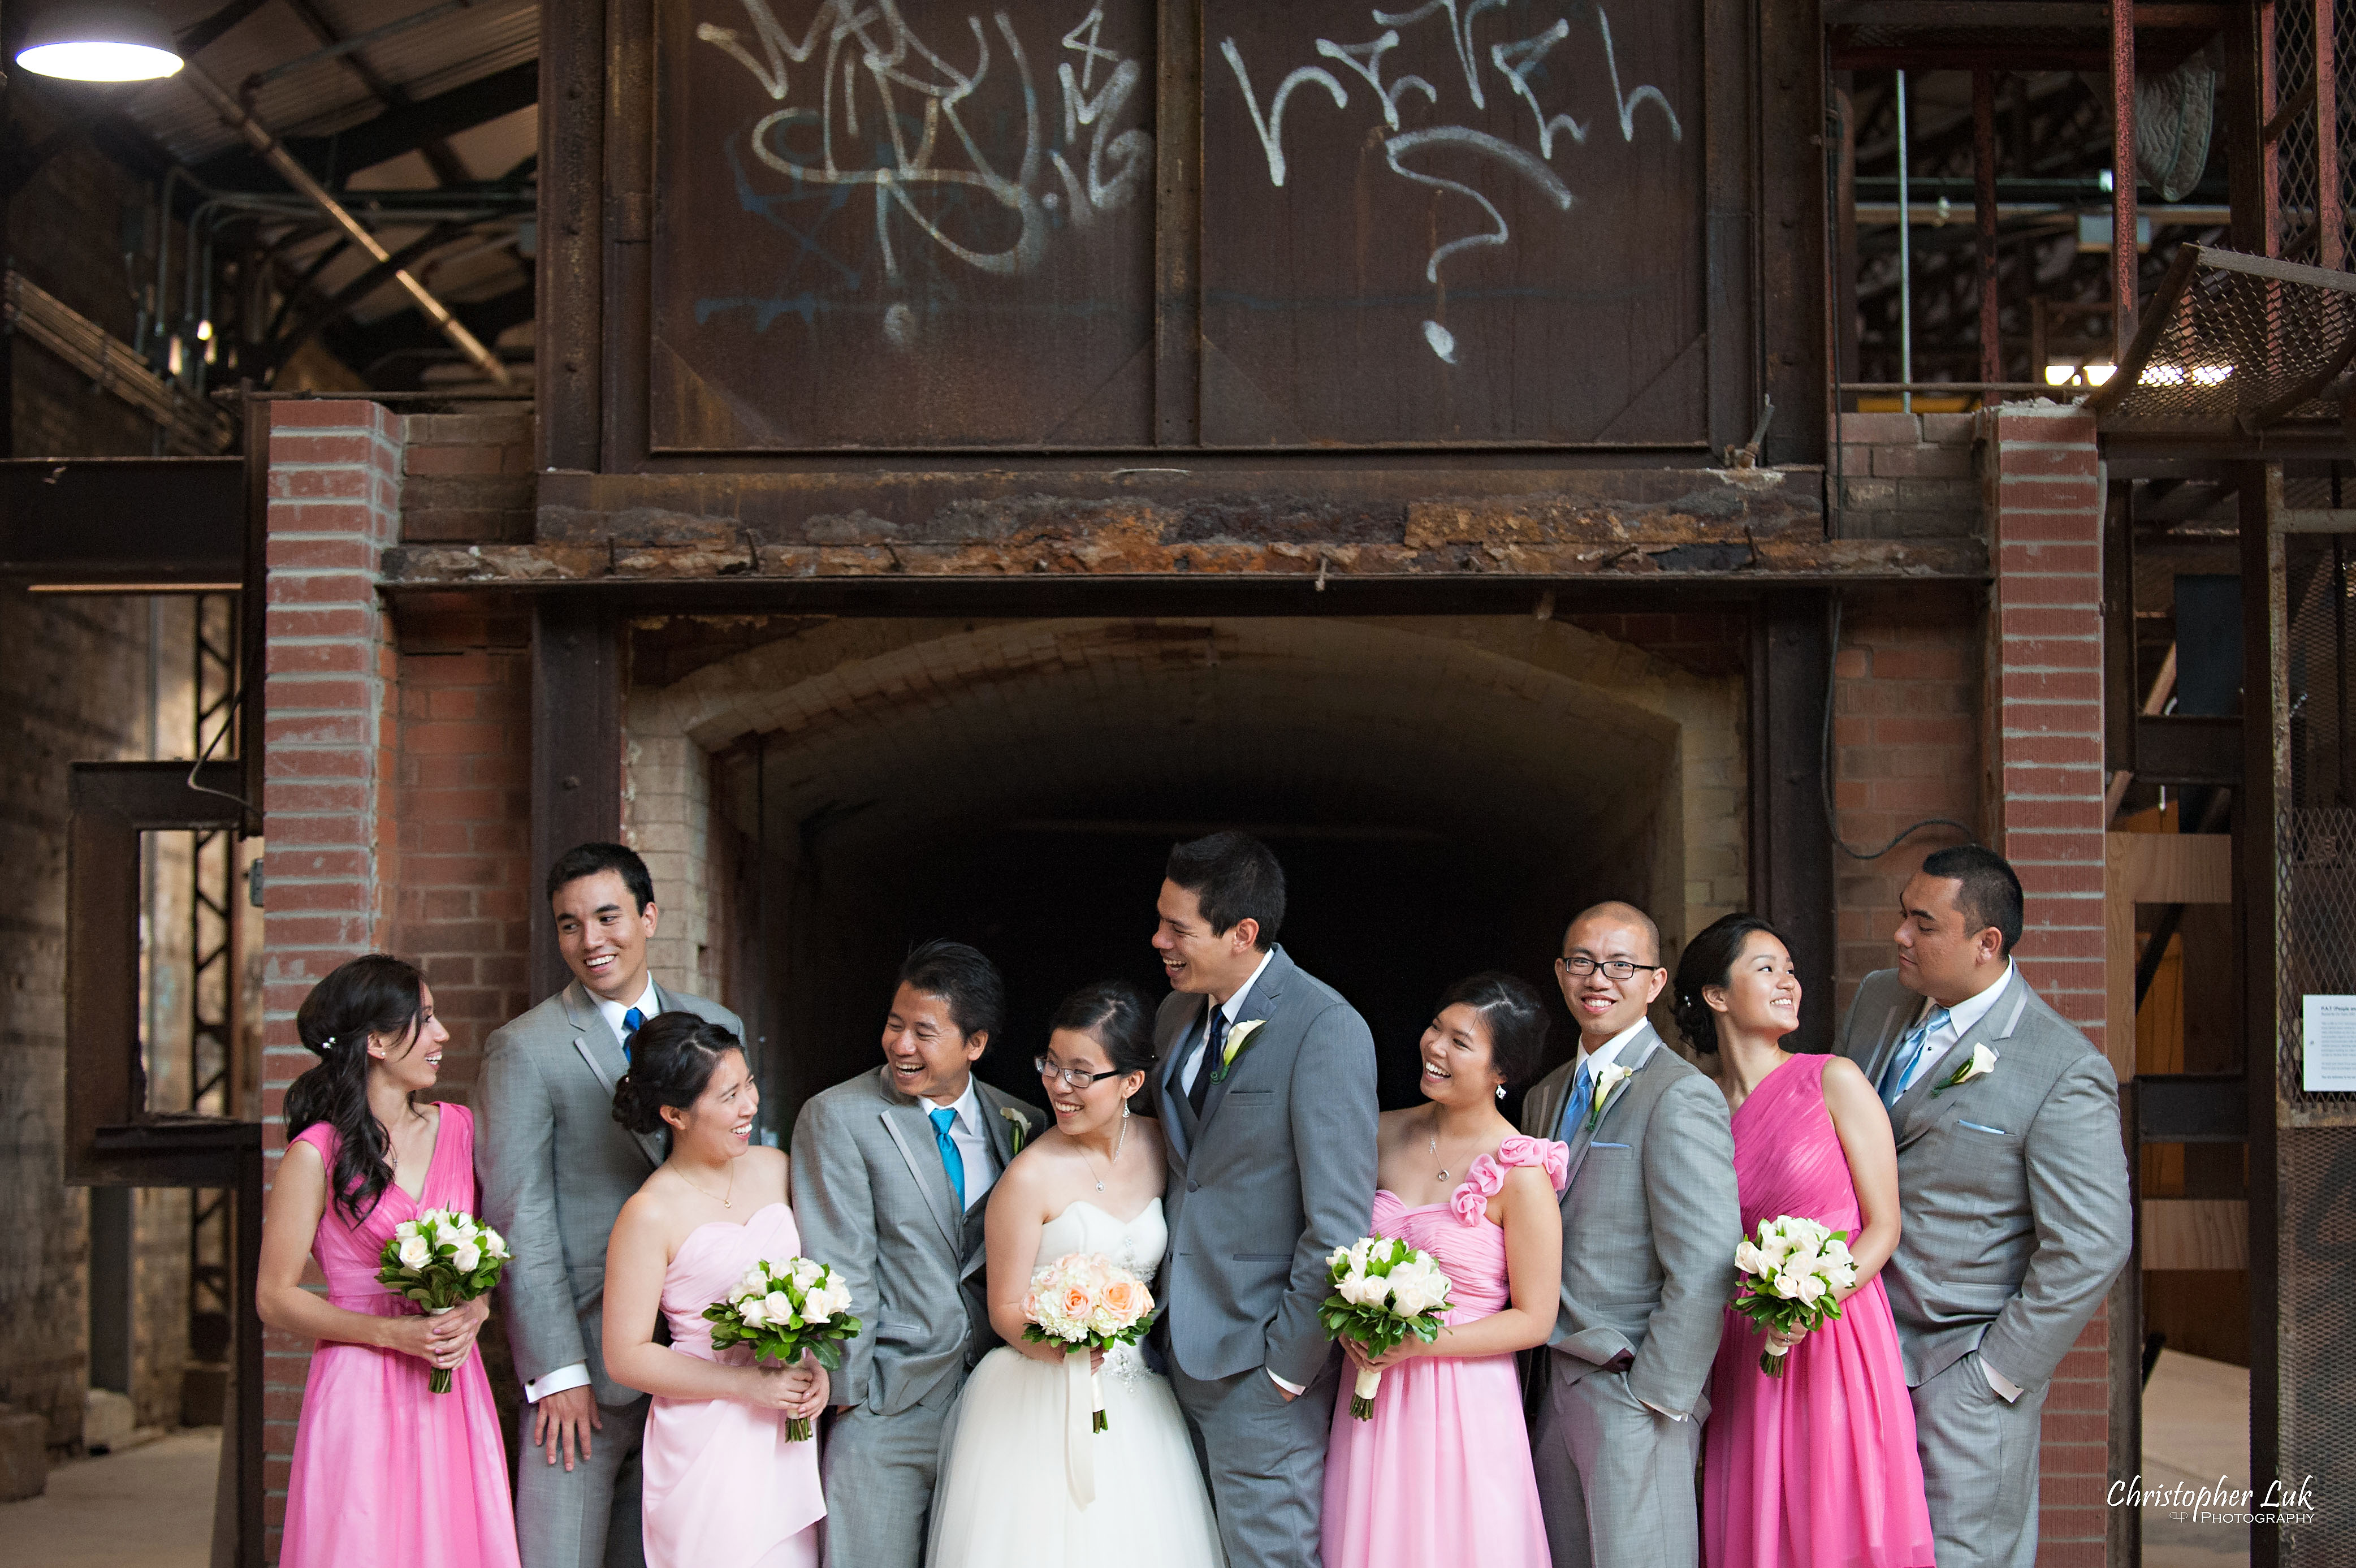 Candy and Francis' Wedding – The Grand Hotel Toronto, Berkeley Fieldhouse, Evergreen Brick Works